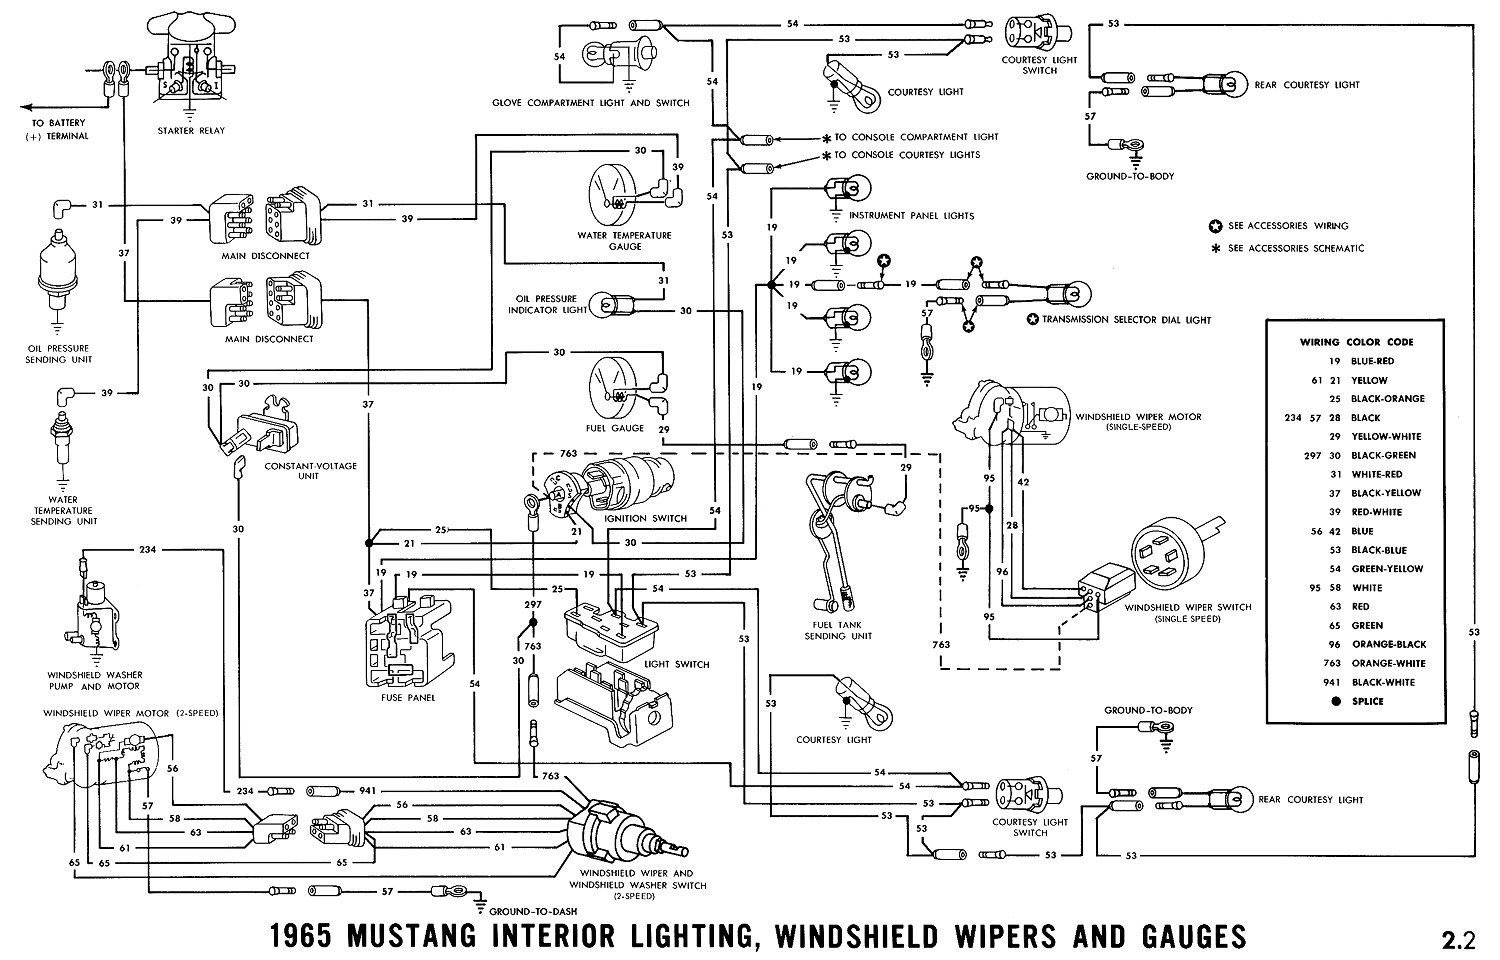 1965g 1965 mustang wiring diagrams average joe restoration 1968 mustang ignition switch wiring diagram at gsmx.co